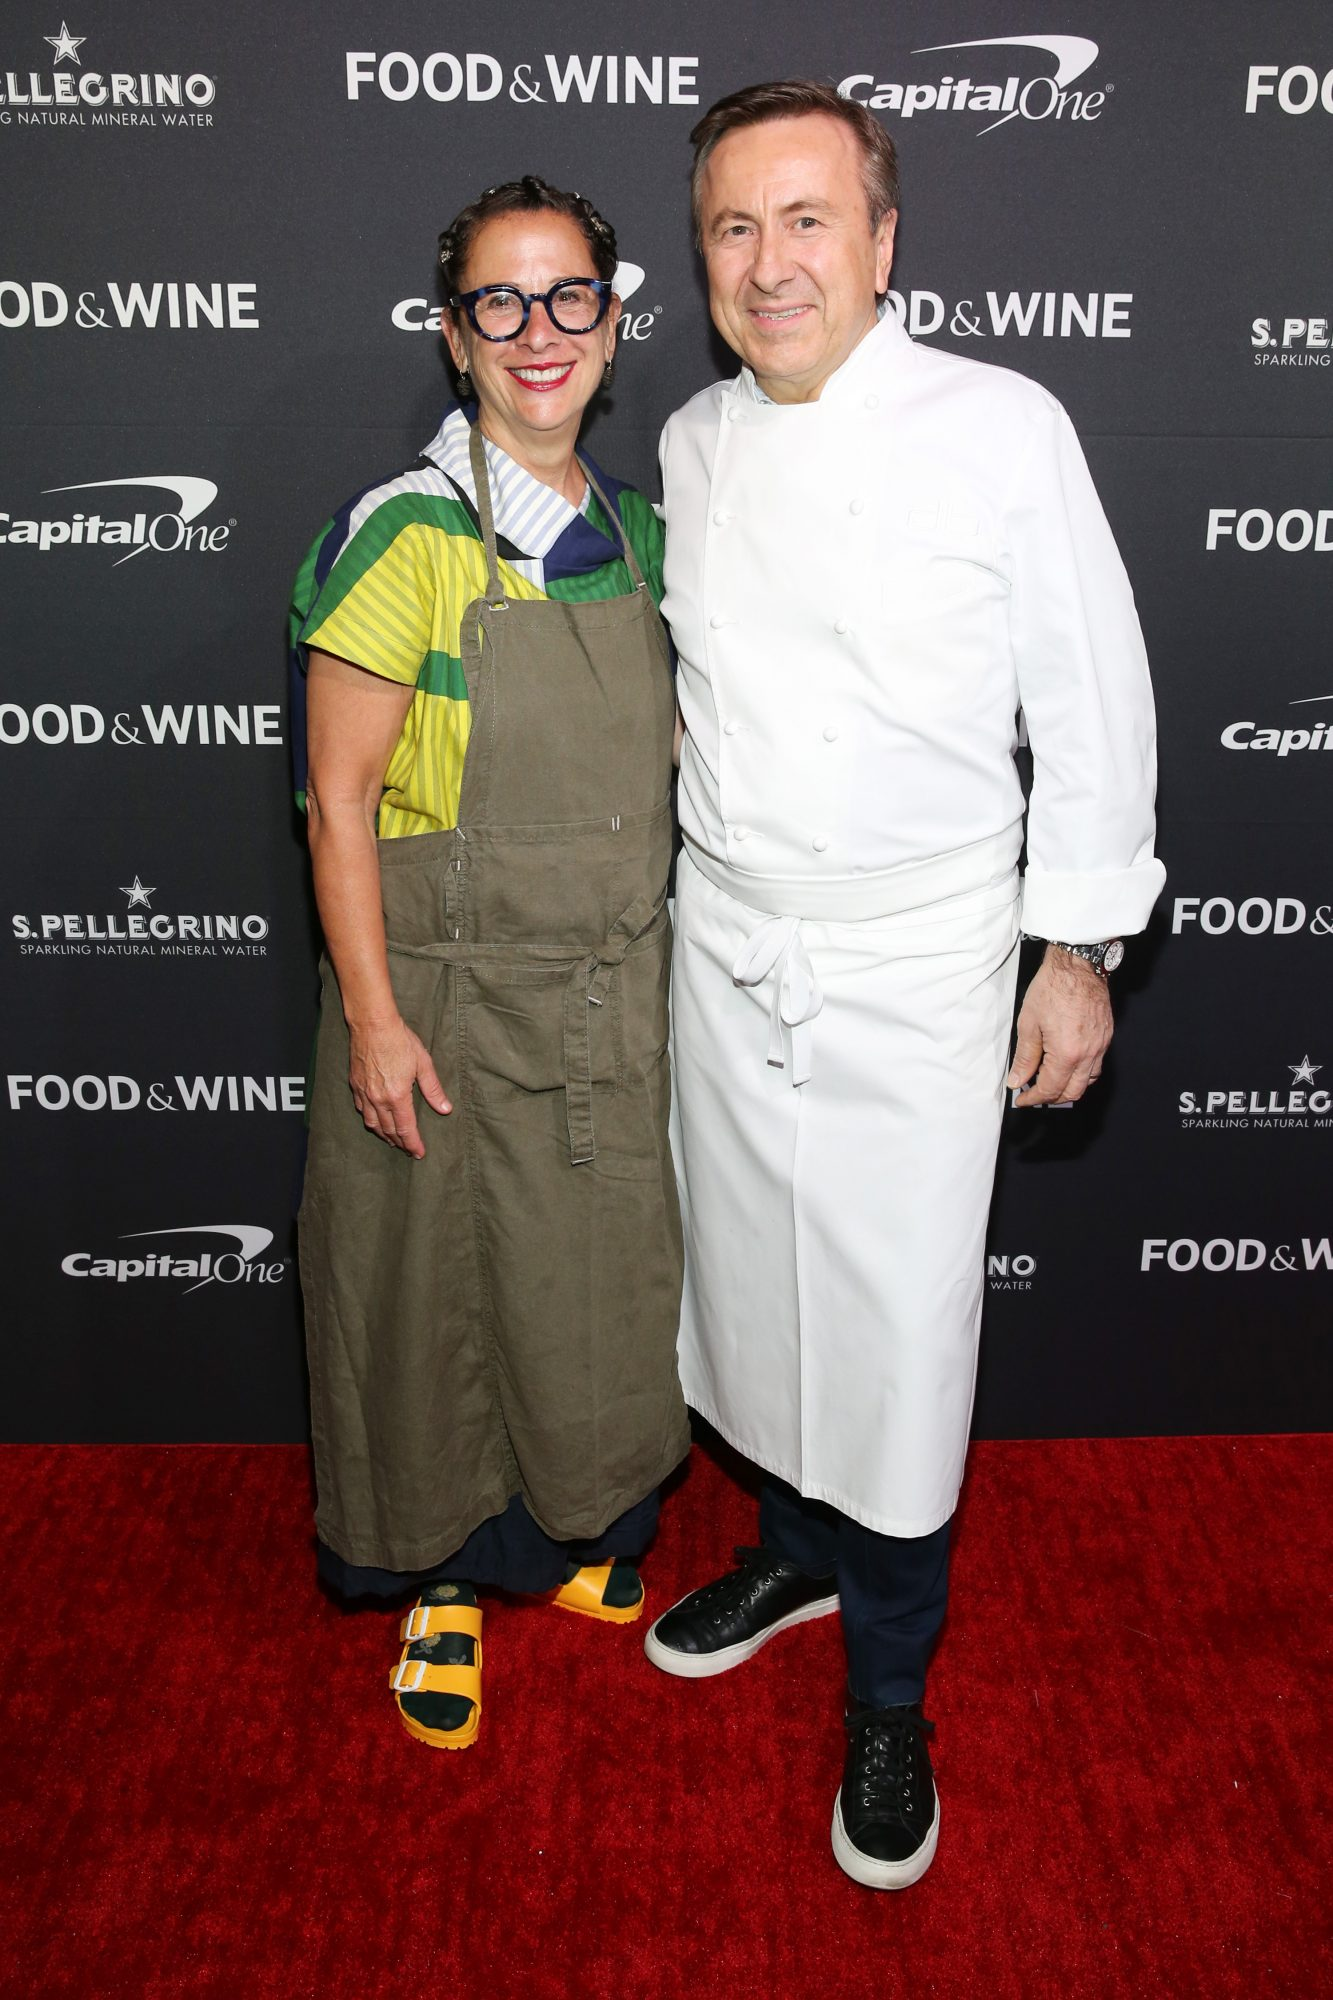 Best-New-Chefs-FT-3.jpg